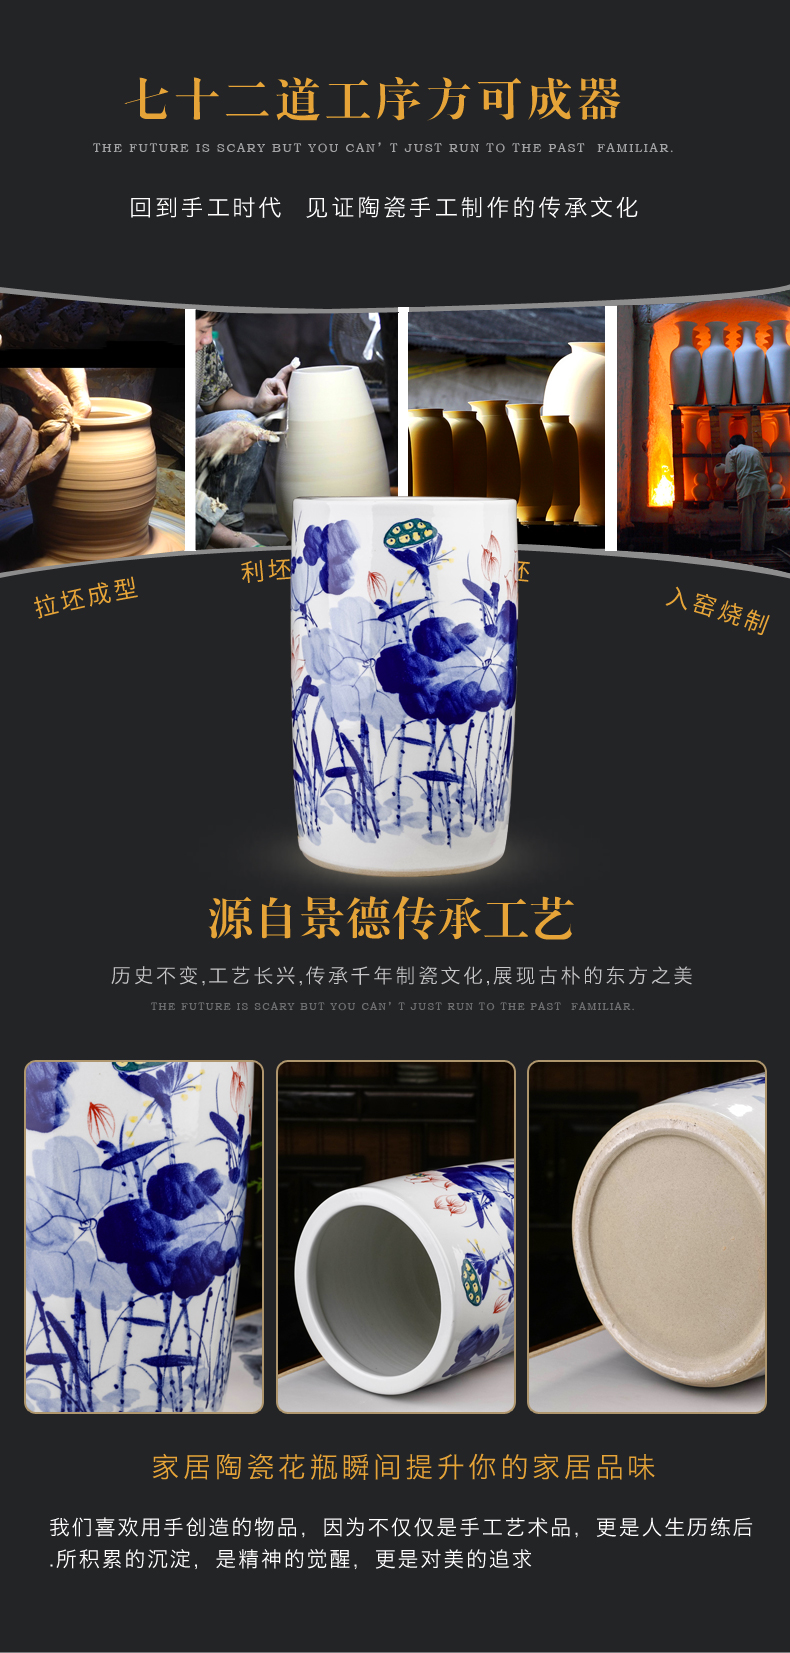 Put rice paper painting and calligraphy calligraphy and painting to receive tube scroll cylinder hand - made jingdezhen blue and white porcelain ceramic vases, furnishing articles of Chinese style